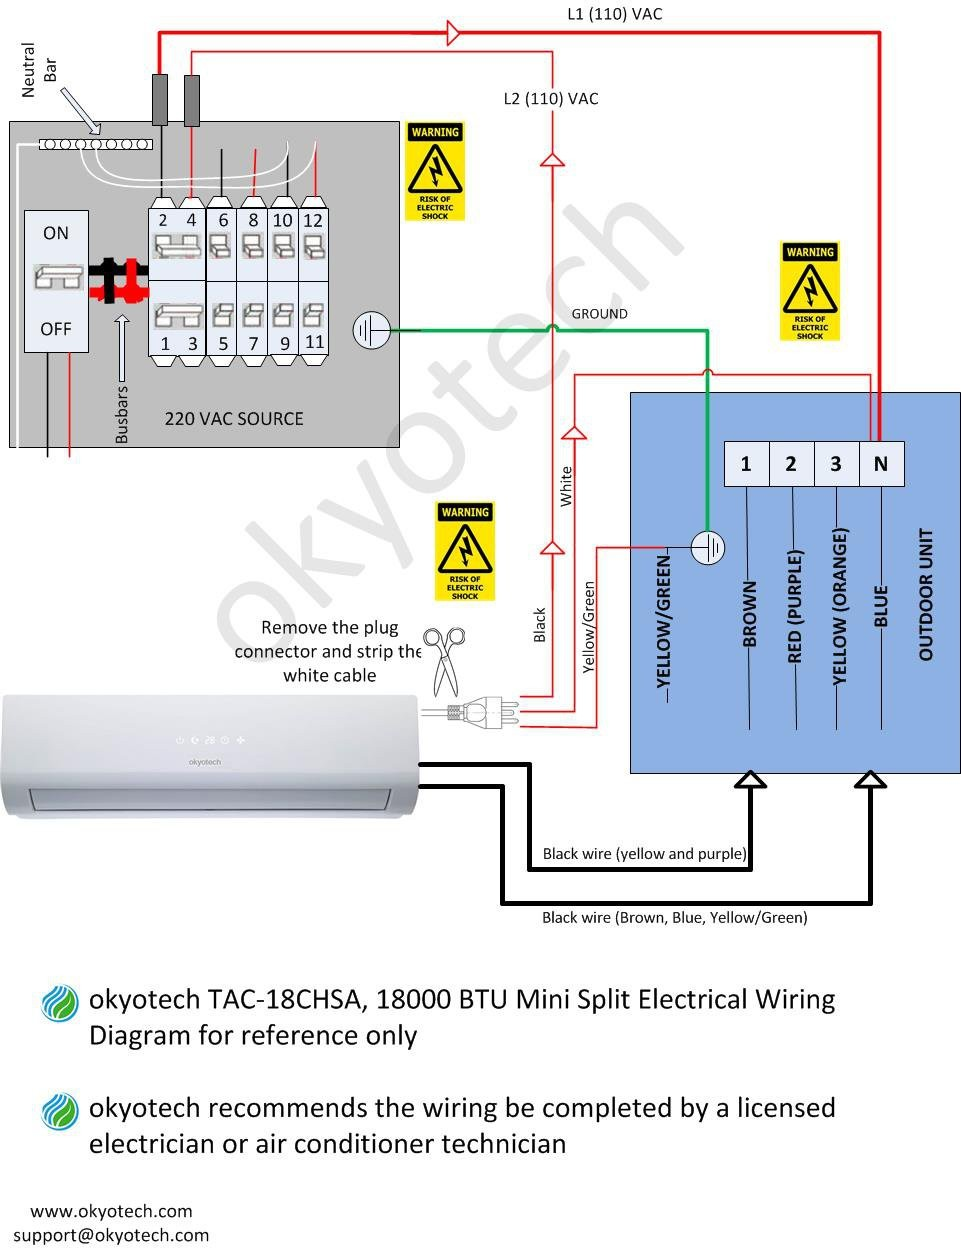 Split System Air Con Wiring Diagram Okyotech Minictless Conditioner Cooling Heating In And